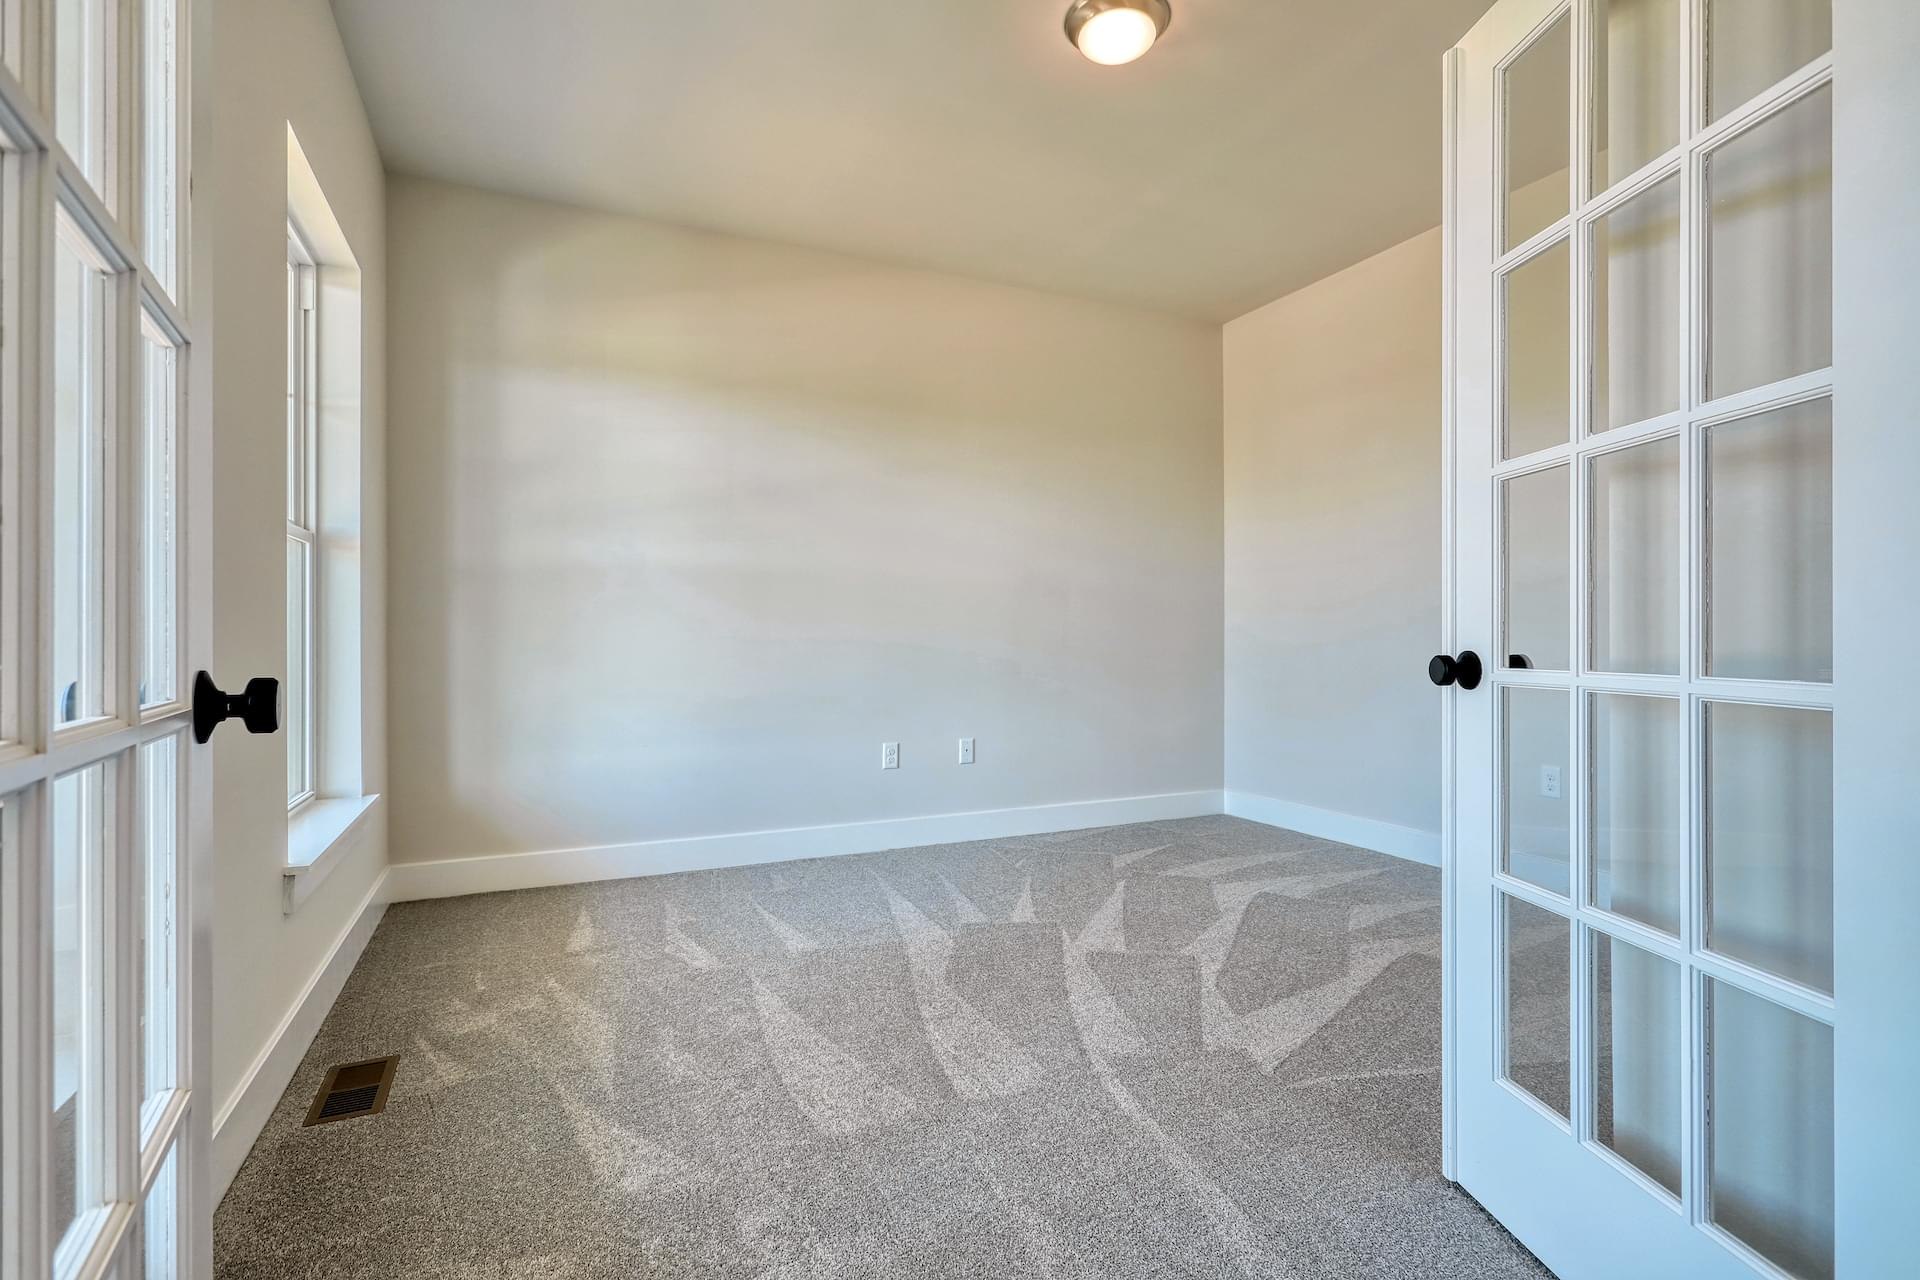 4br New Home in Morgantown, PA